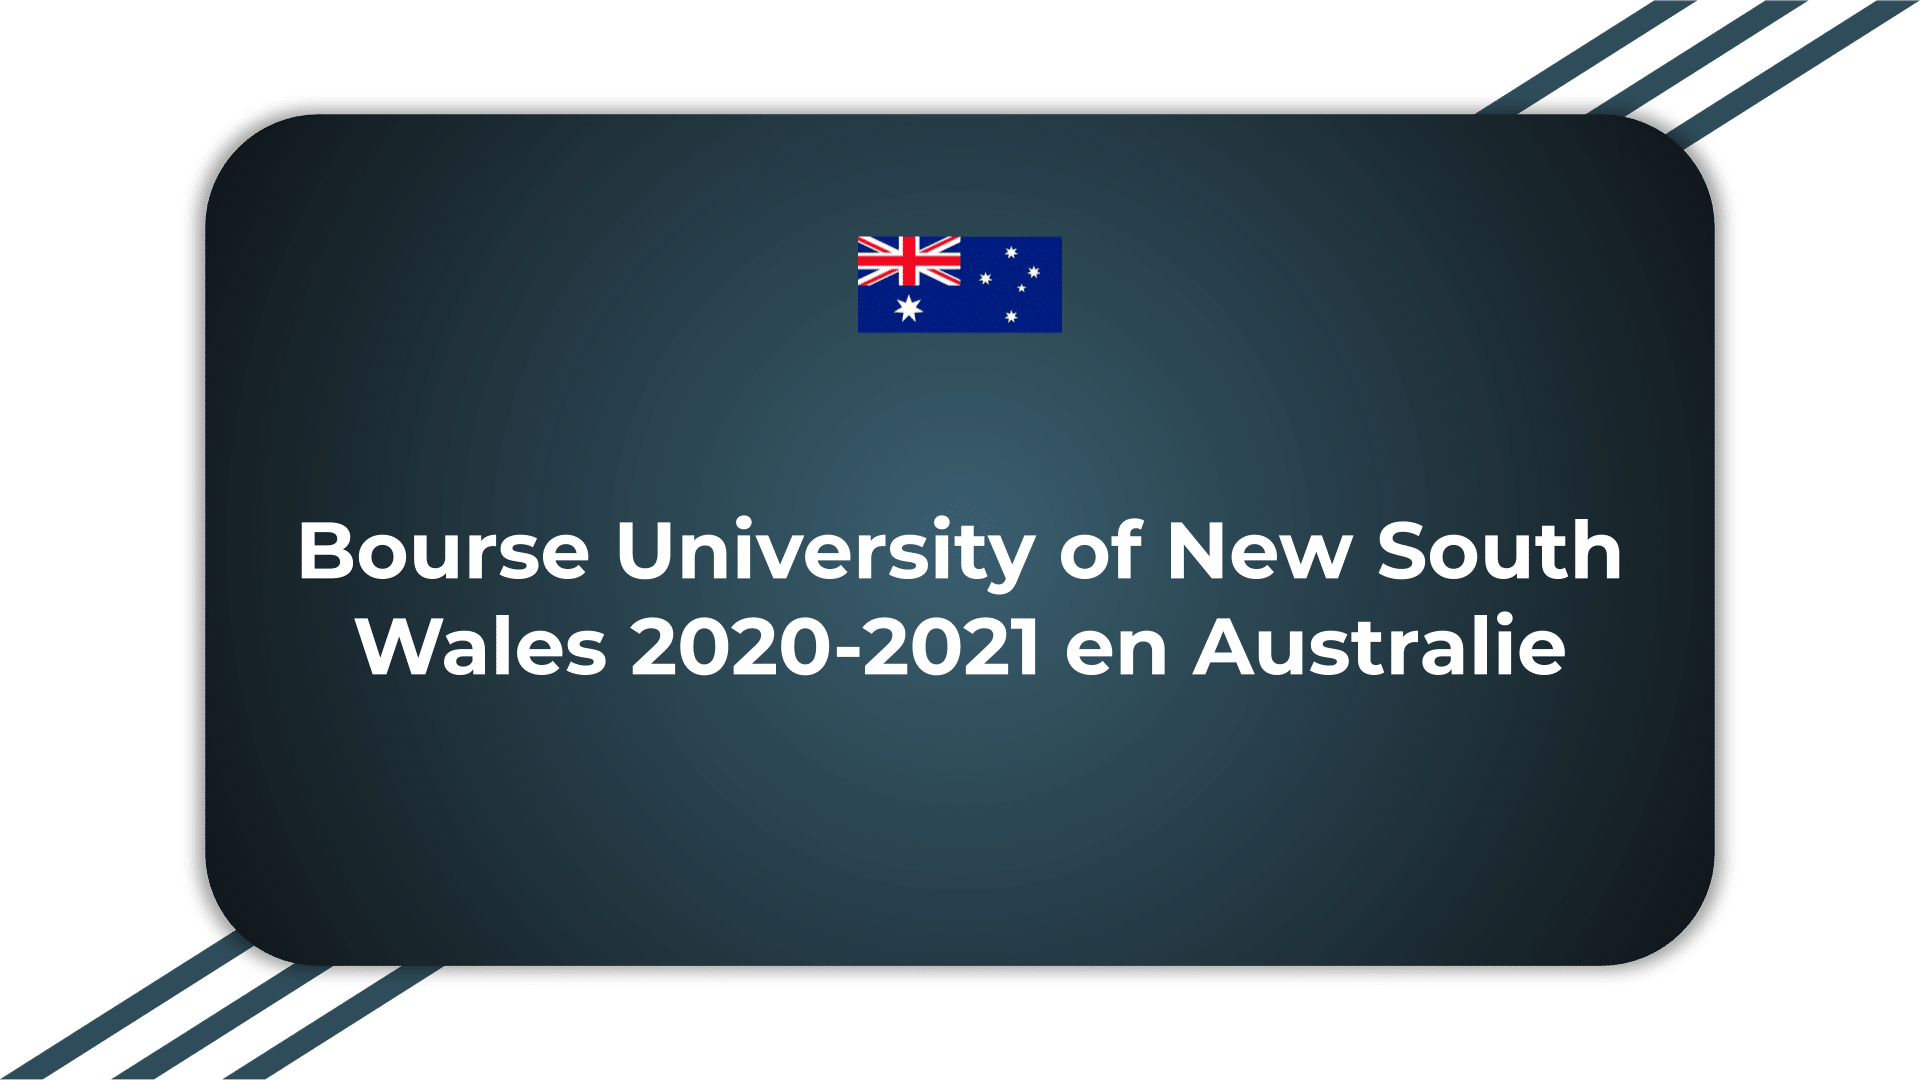 Bourse University of New South Wales